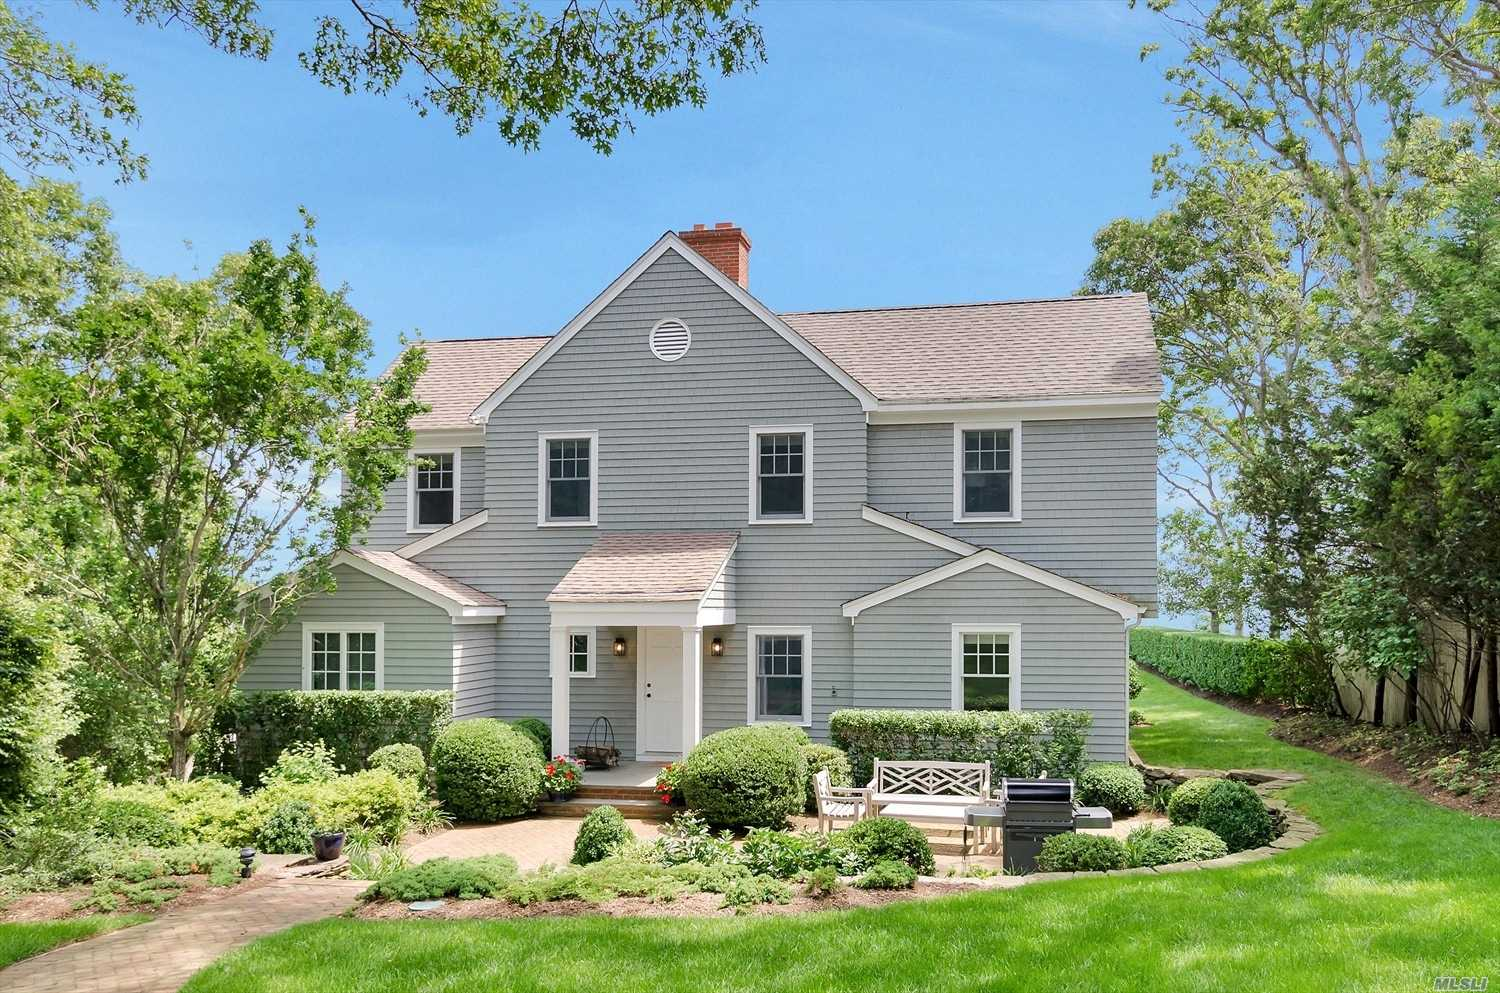 Experience The North Fork In This Spacious Mint 4 Br Nassau Point Bayfront Home On Lushly Landscaped Acre With Waterside Deck Overlooking Peconic Bay. Enjoy Spectacular Views, Poolside Fun And Relaxing Days At The Beach.